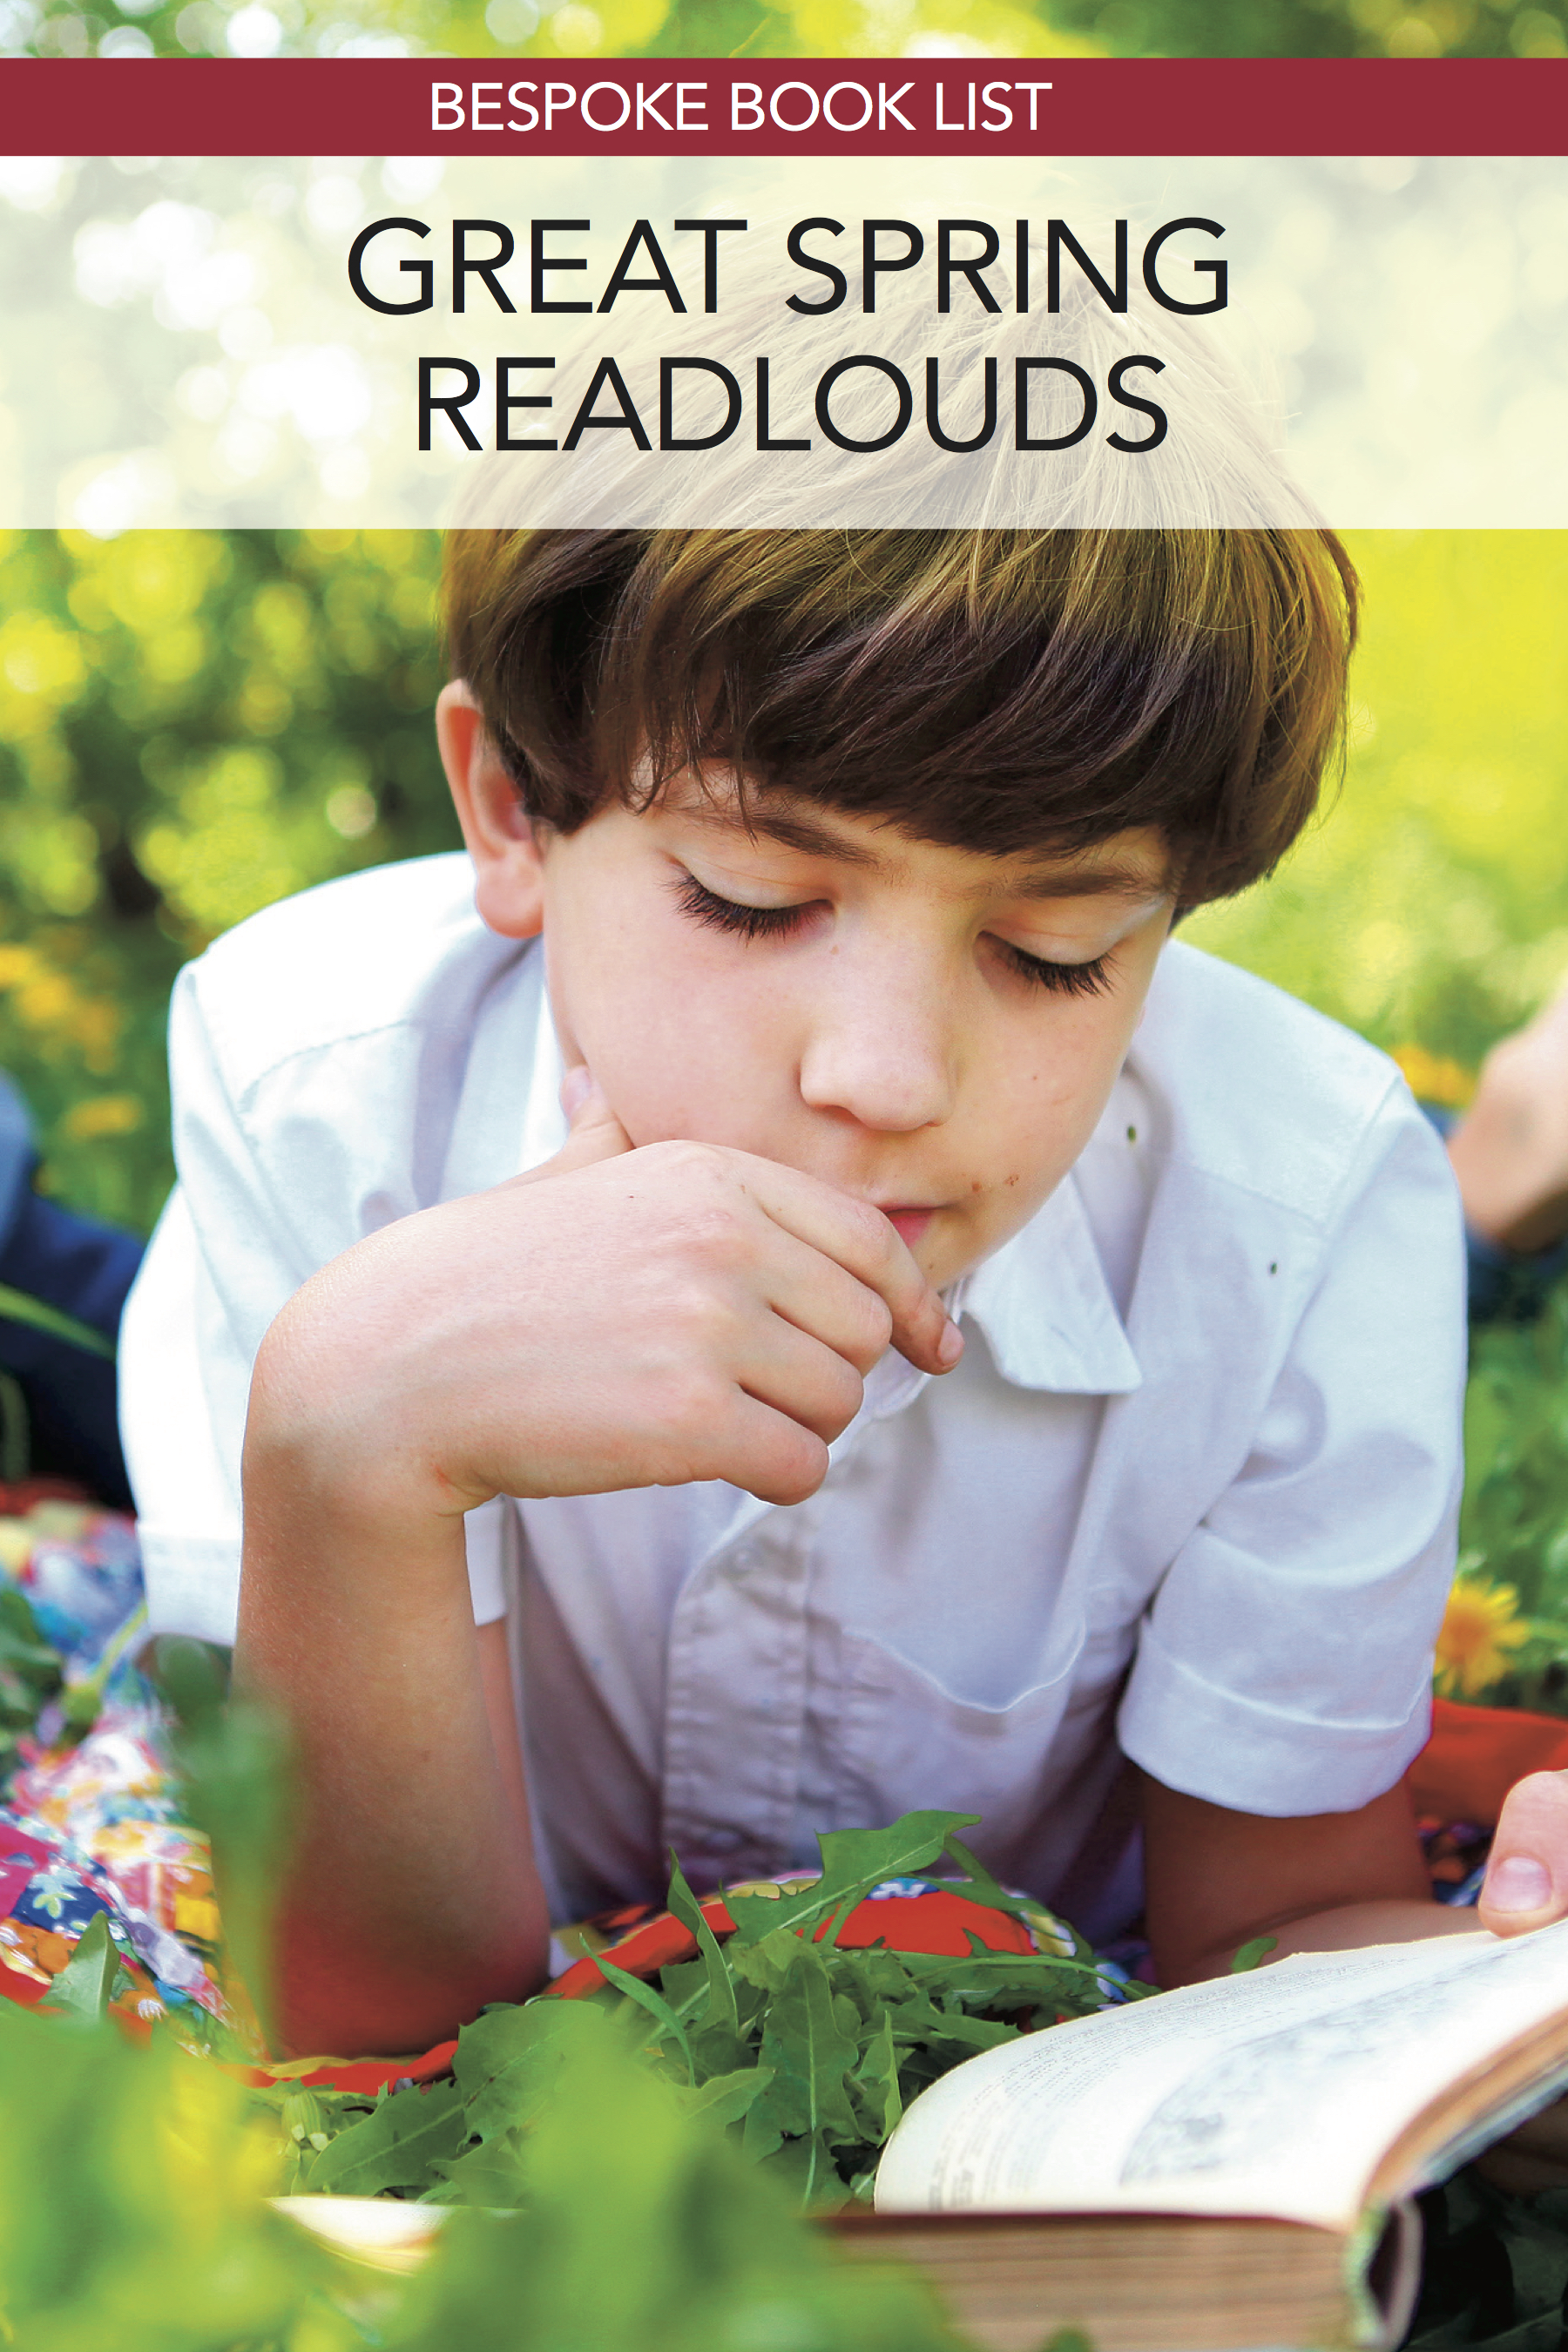 Bespoke Book List: What Are Some Good Spring Readalouds?